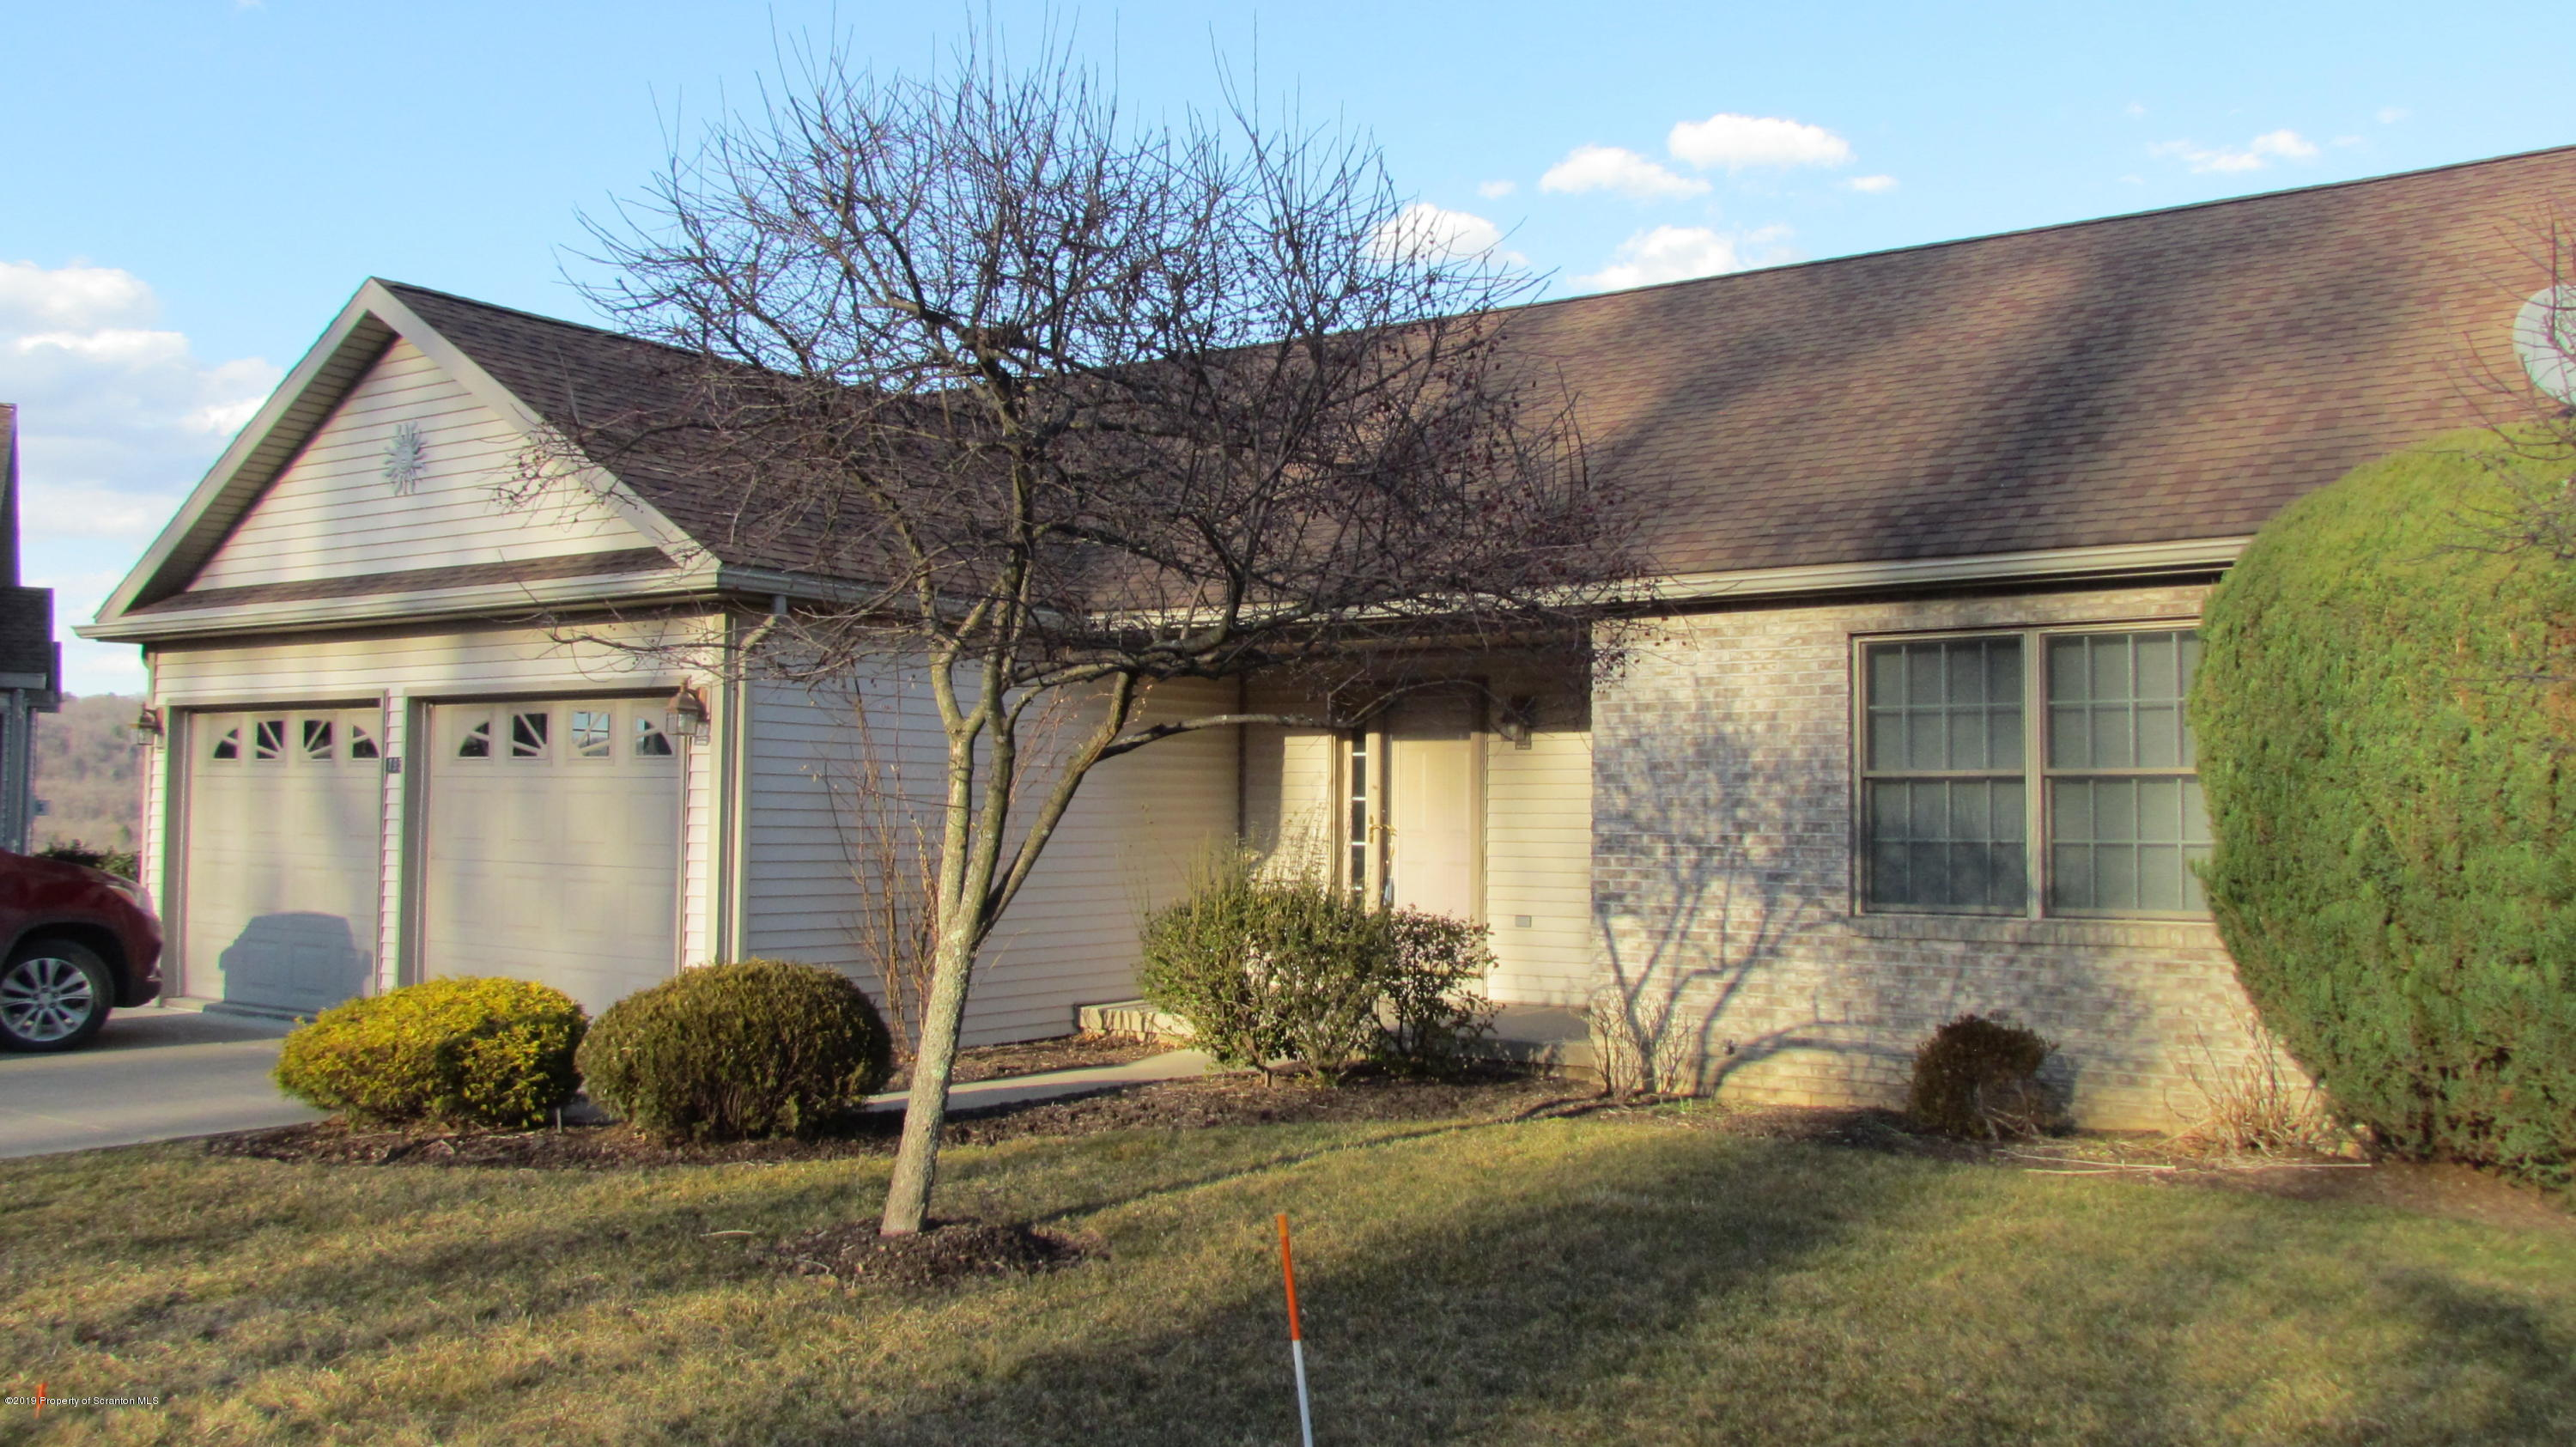 195 Grandview Dr, Tunkhannock, Pennsylvania 18657, 3 Bedrooms Bedrooms, 7 Rooms Rooms,3 BathroomsBathrooms,Residential - condo/townhome,For Sale,Grandview,18-4733